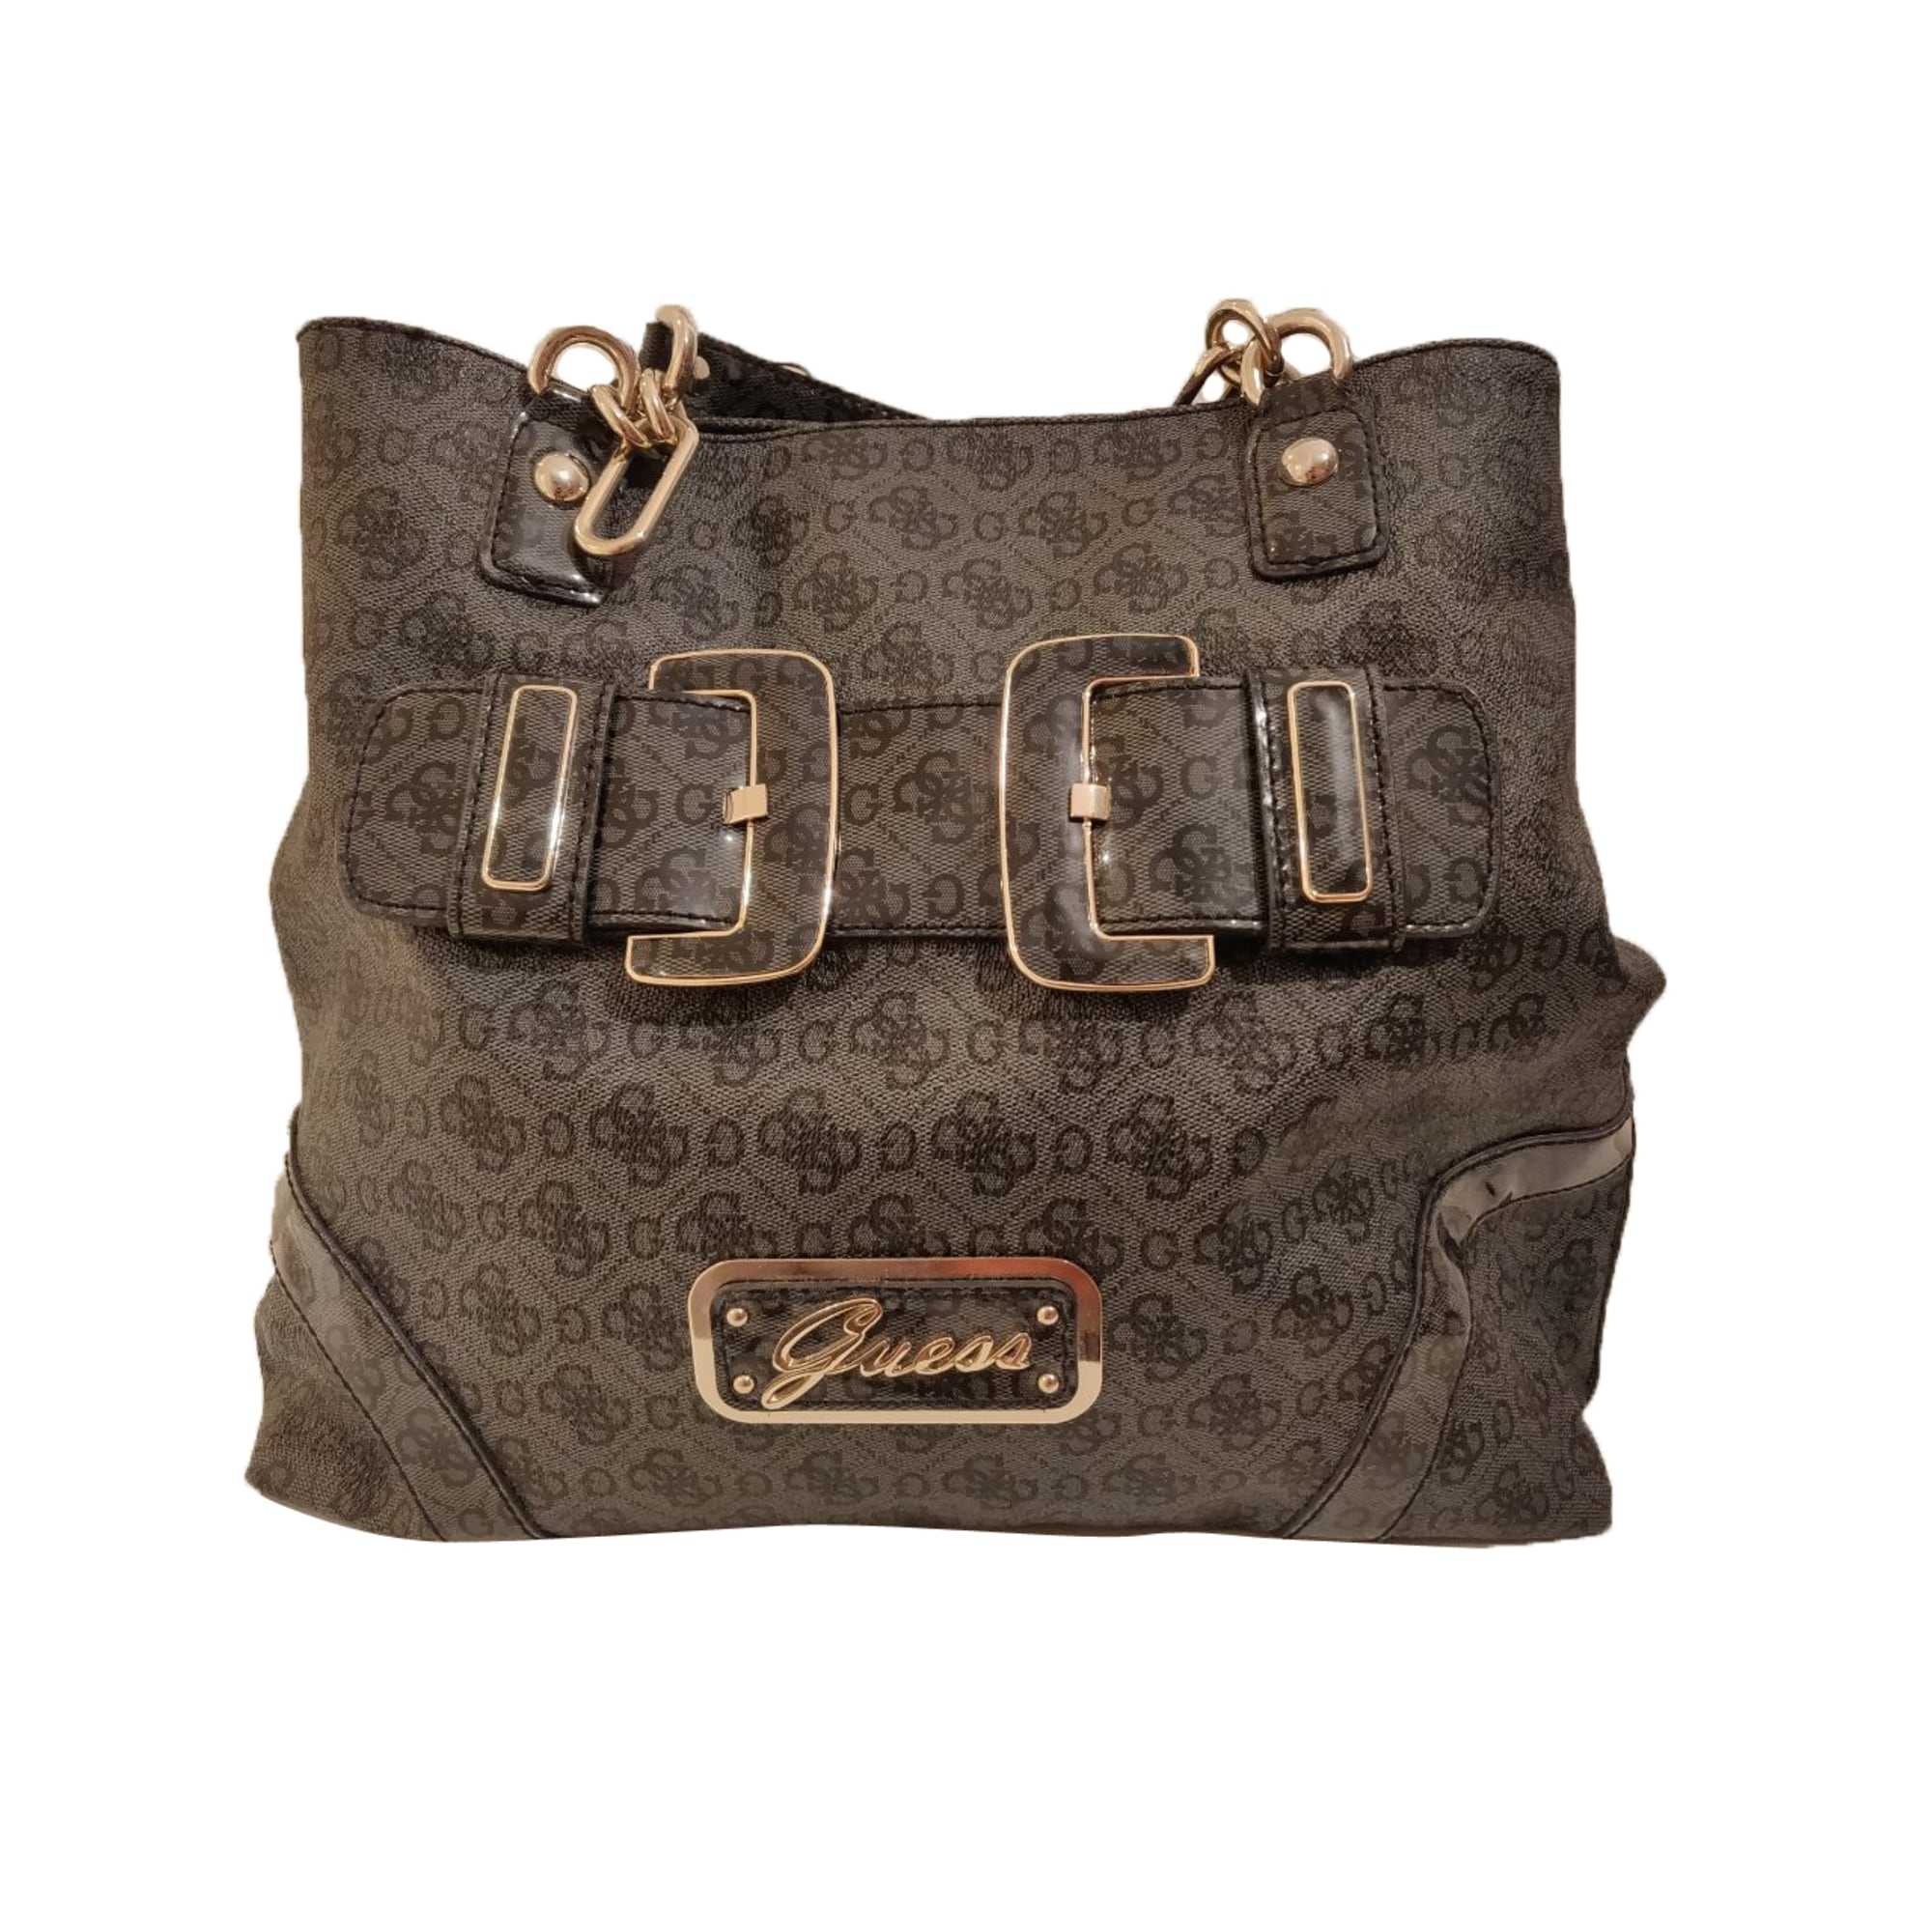 sac a main guess gris anthracite bandouliere